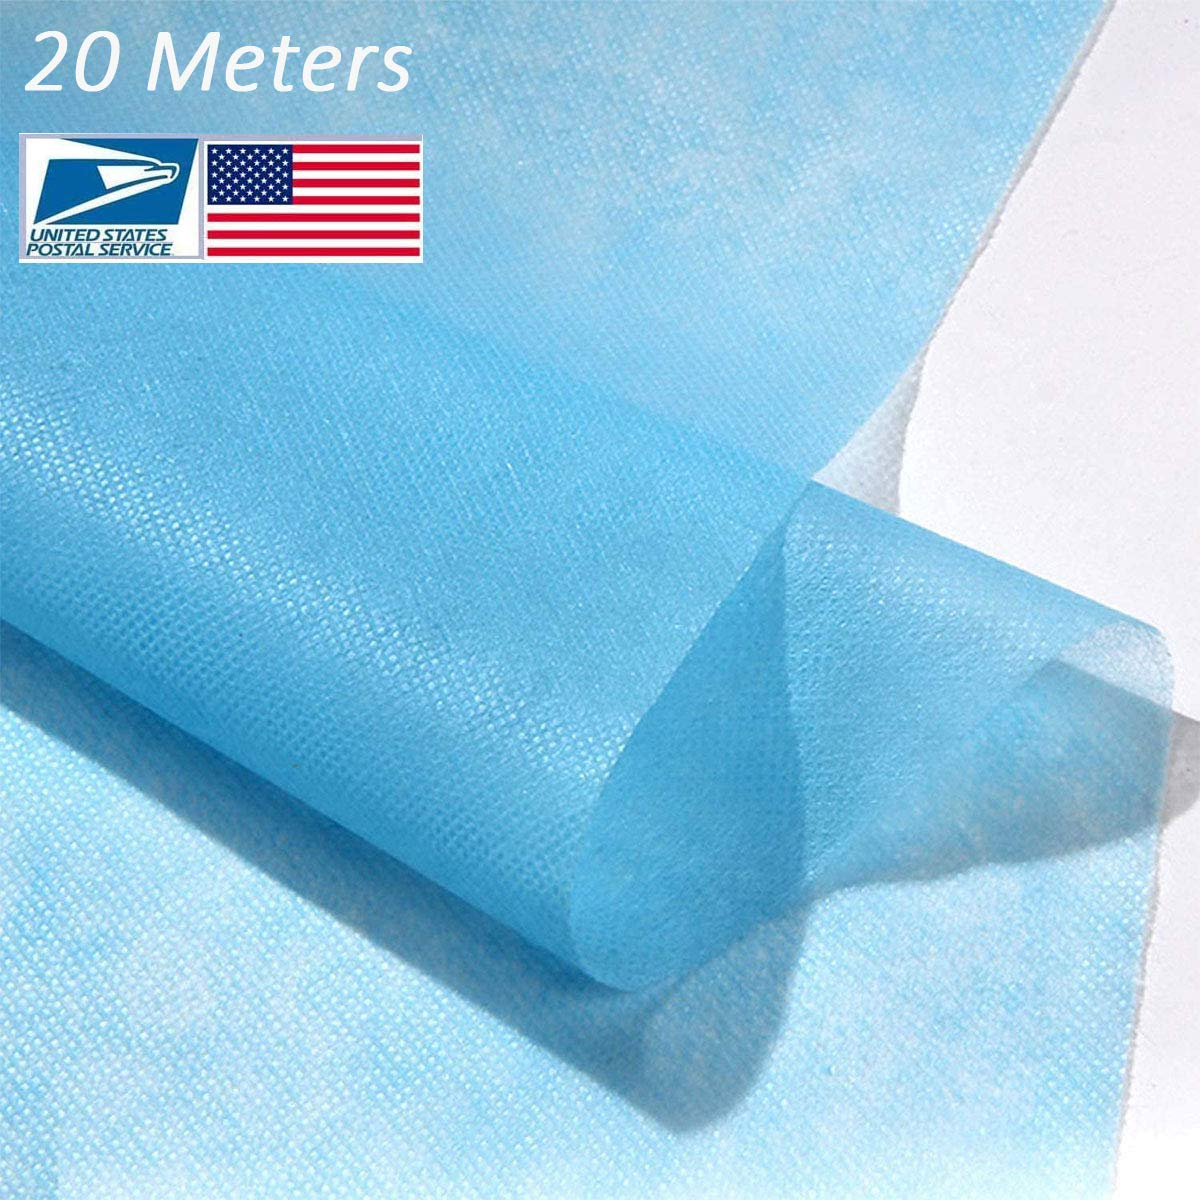 Disposable Waterproof Non-Woven Fabric Cloth,95% Polypropylene Fabric,DIY Handmade Material,Waterproof and Breathable Skin-Friendly and Soft (20M)